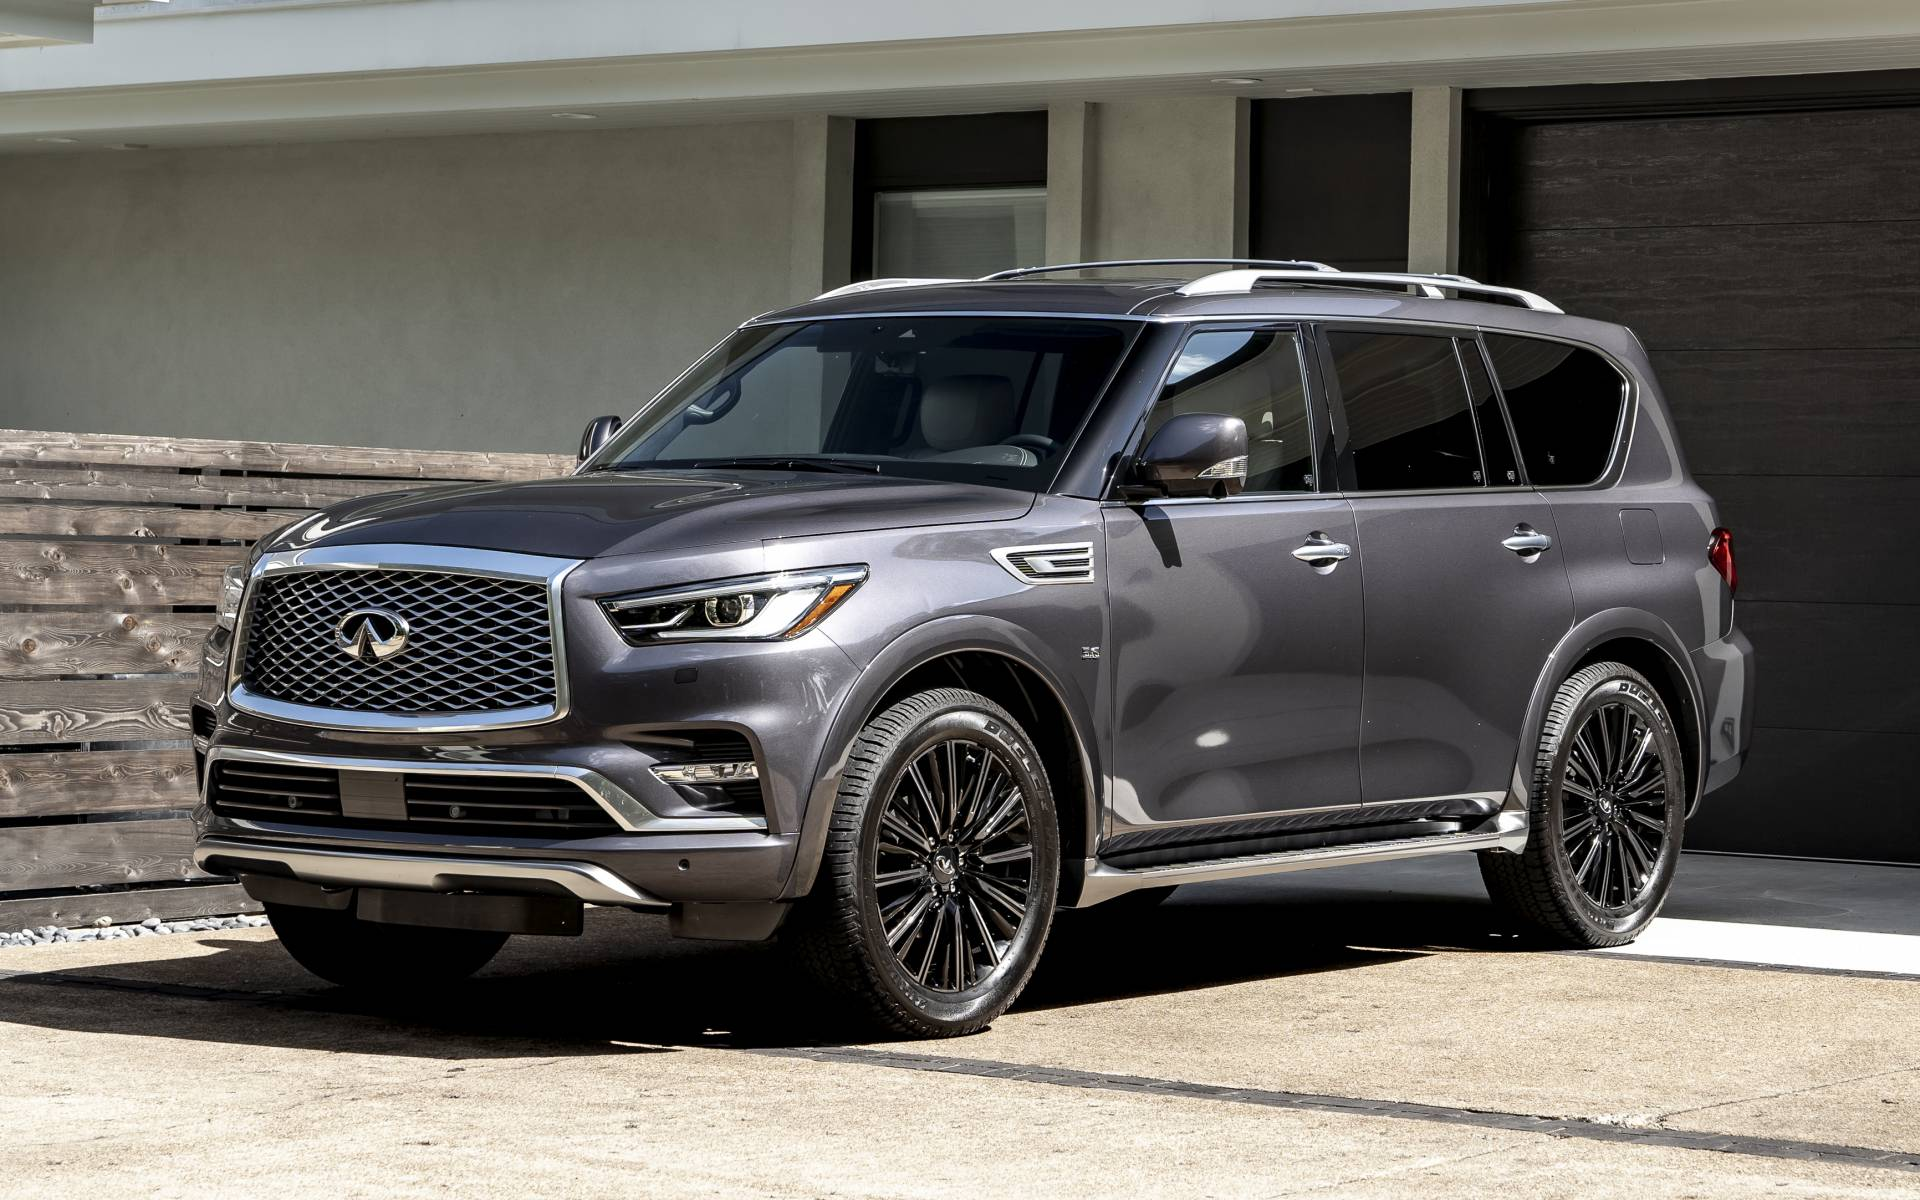 2020 Infiniti Qx80 Suv Redesign and Review